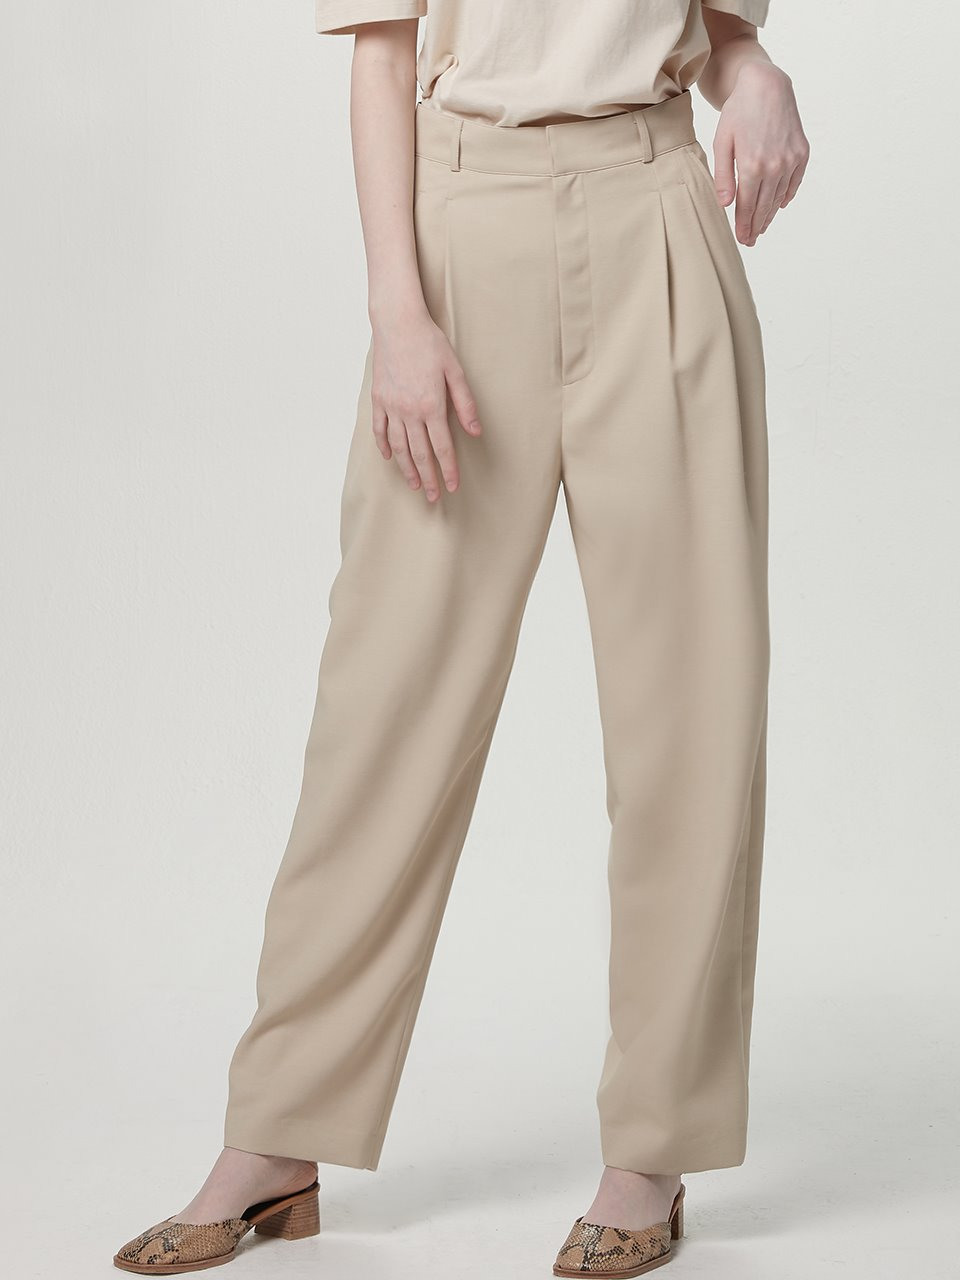 Highwaist tuck pants - Light beige